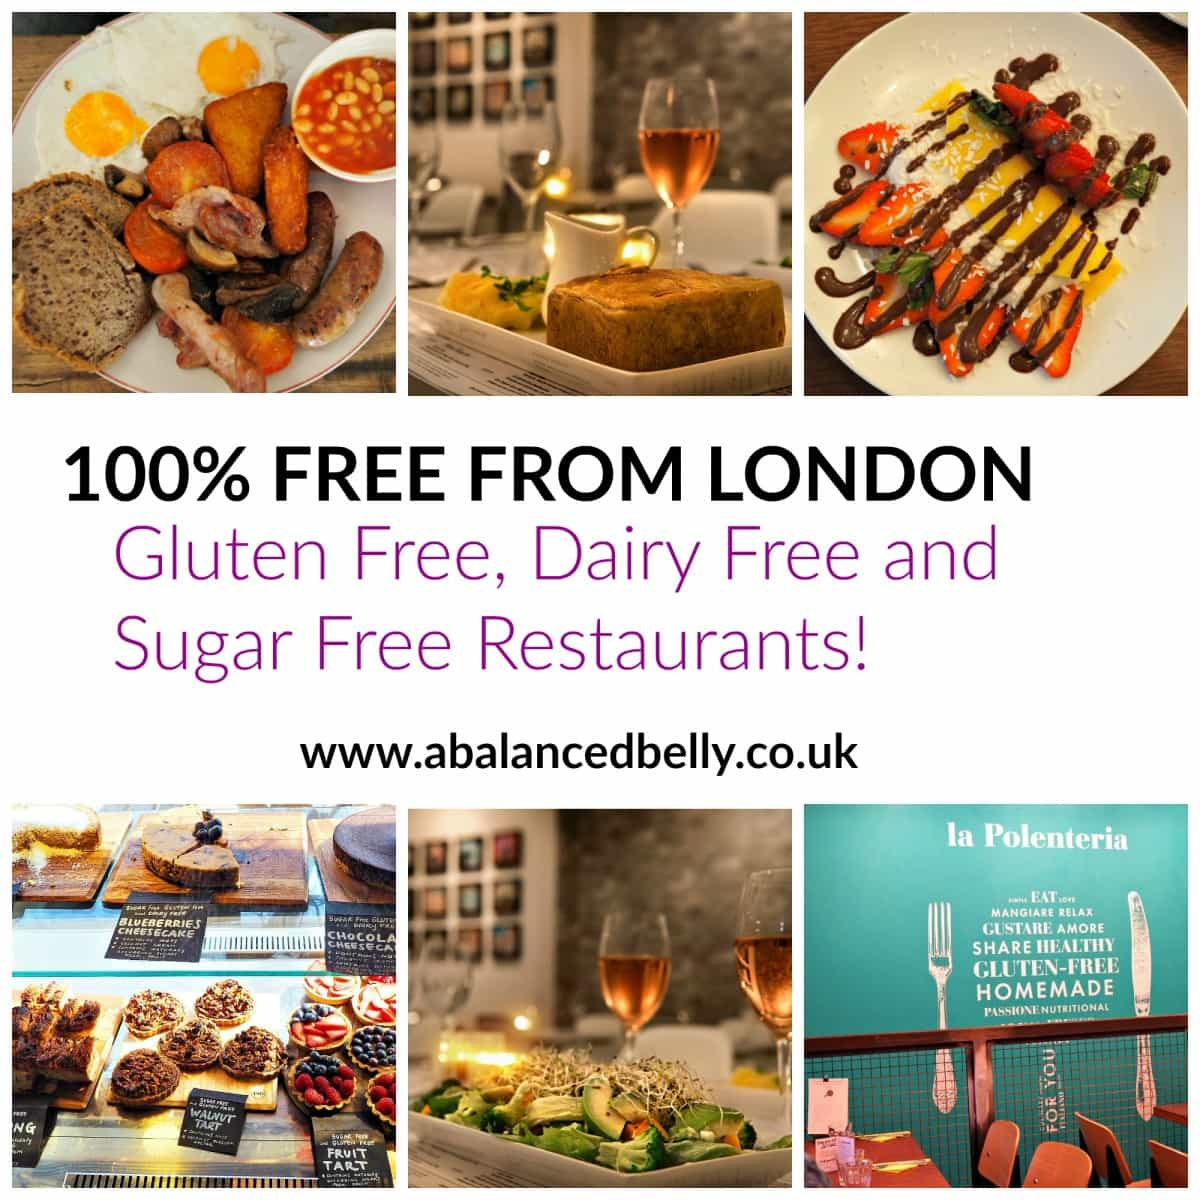 A guide to gluten free London. Everything you need to know about gluten free and dairy free in London.